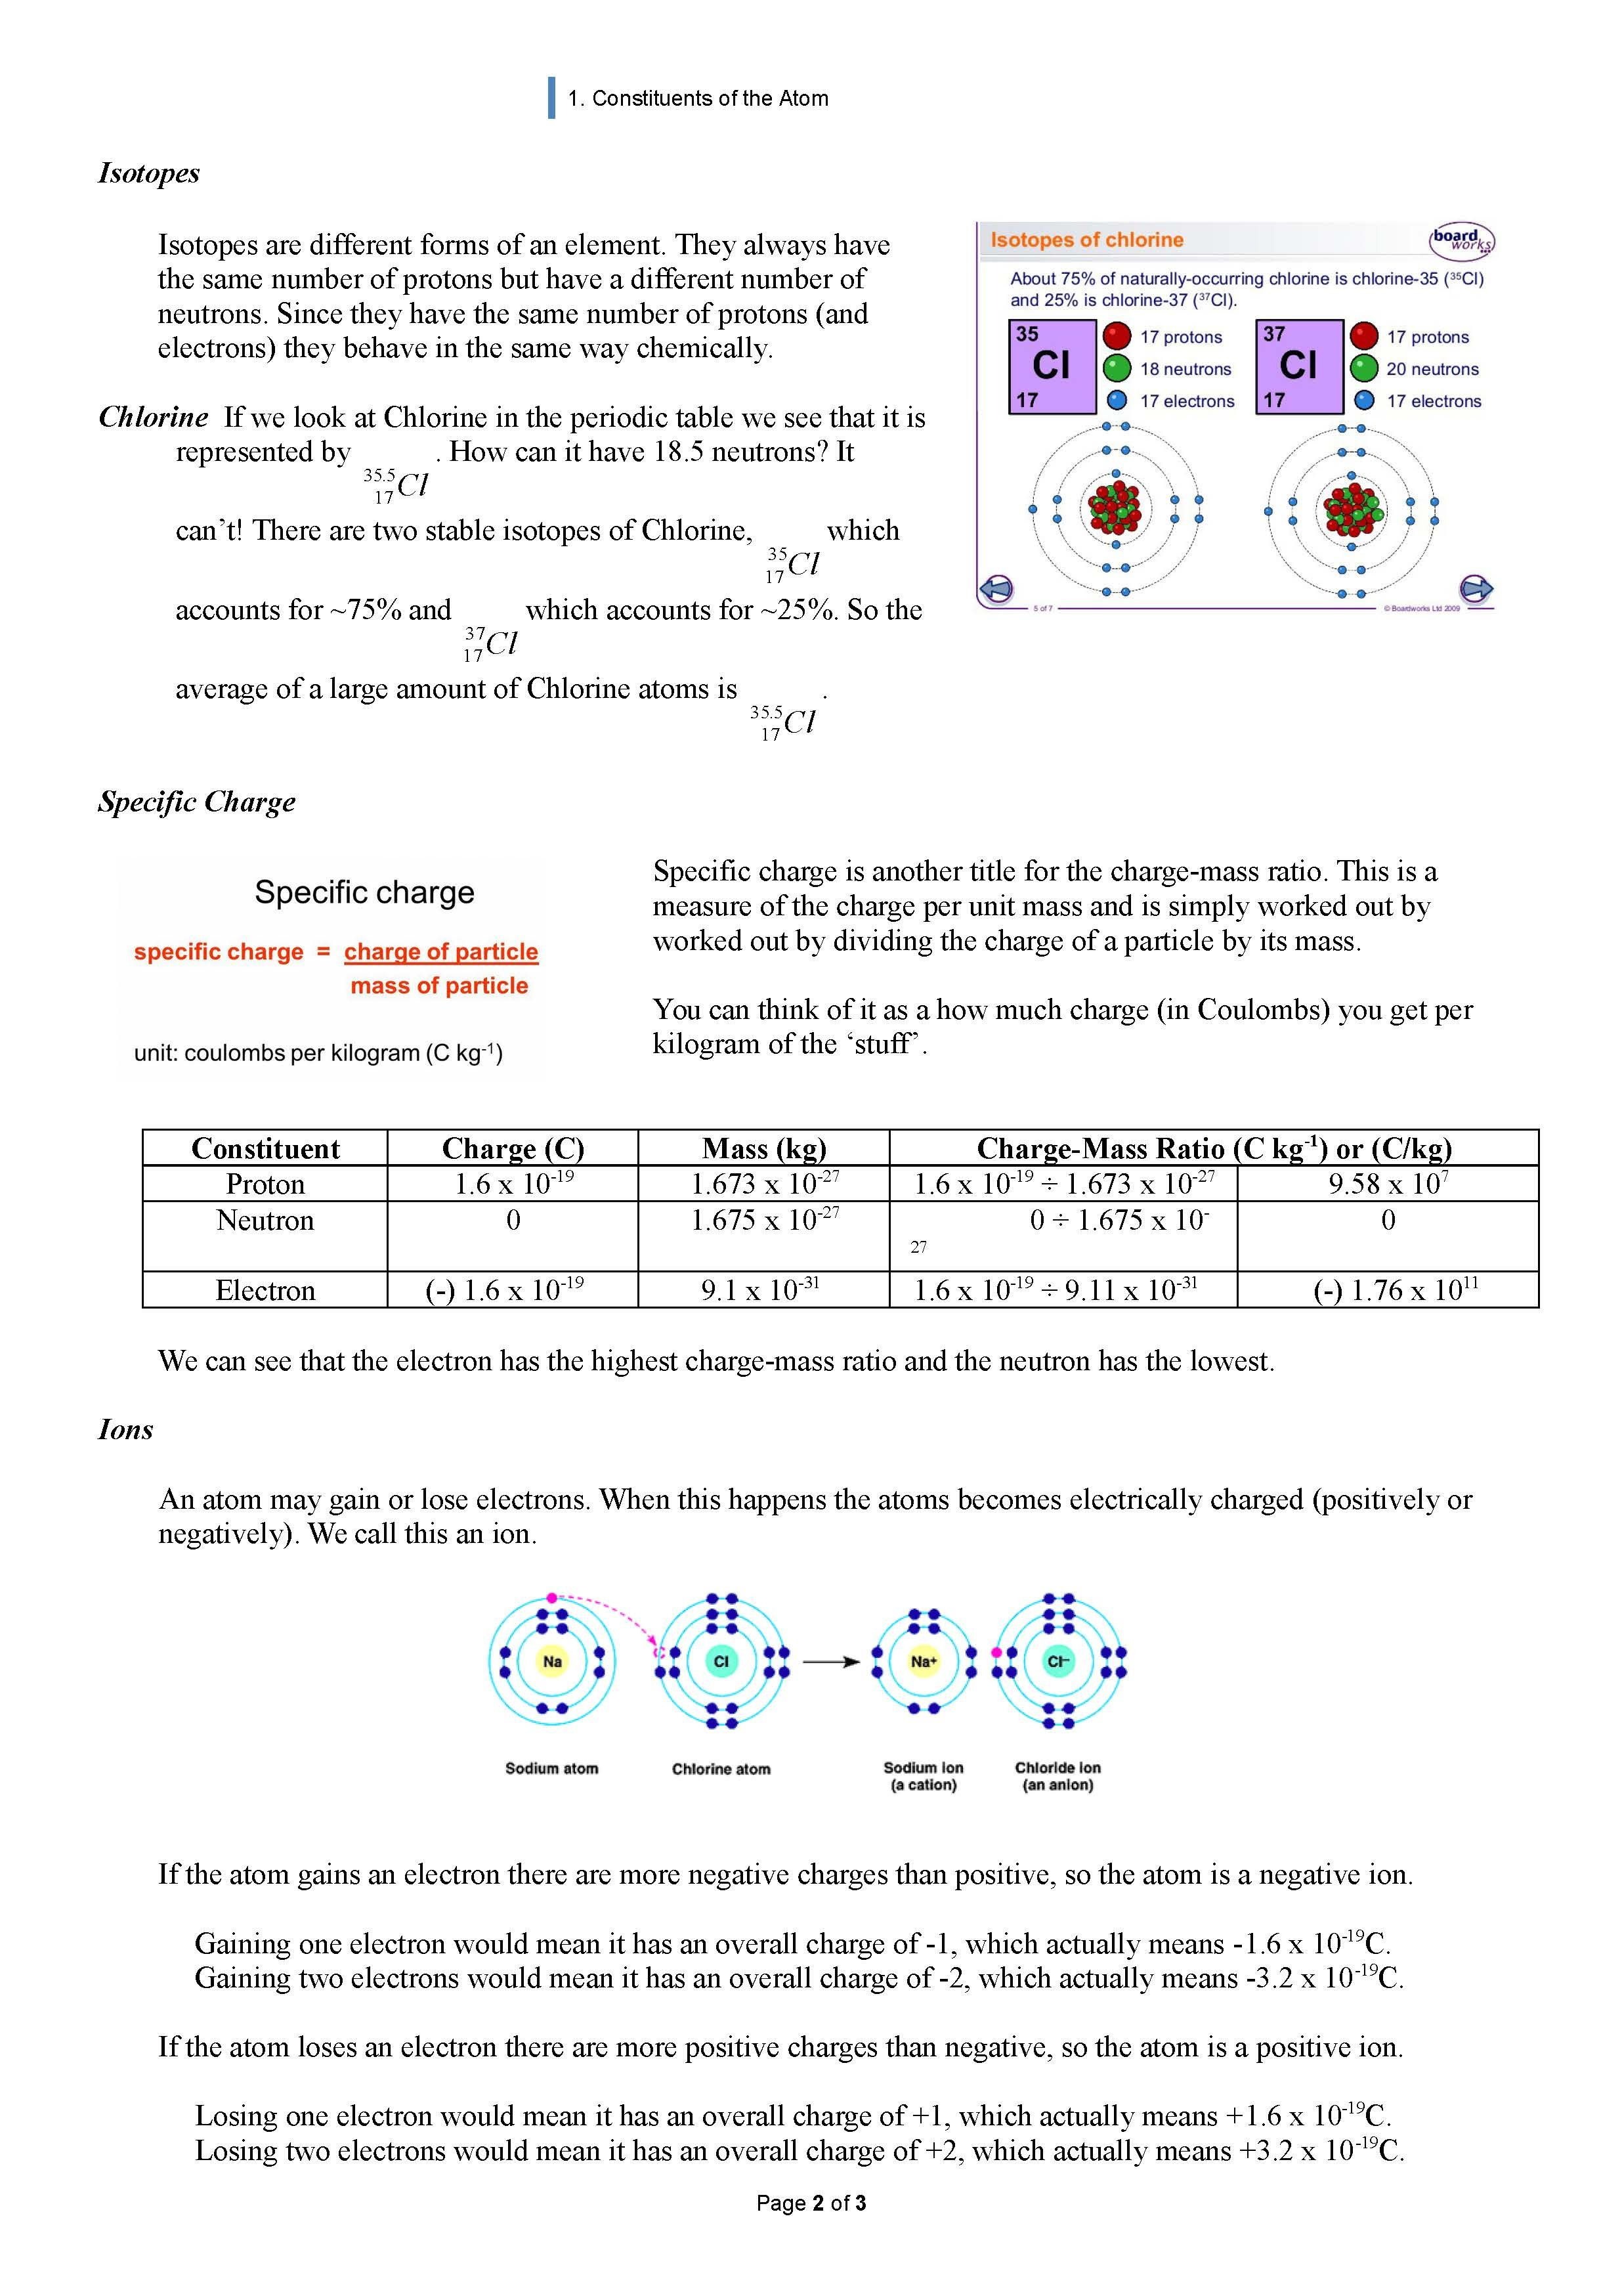 Free Decimal Multiplication Worksheets Word Pin By Dr Jon On The Mighty Atom  Pinterest Matching Worksheets For Preschoolers Excel with Worksheets For Science Word Explore These Ideas And More Alegbra Worksheets Pdf